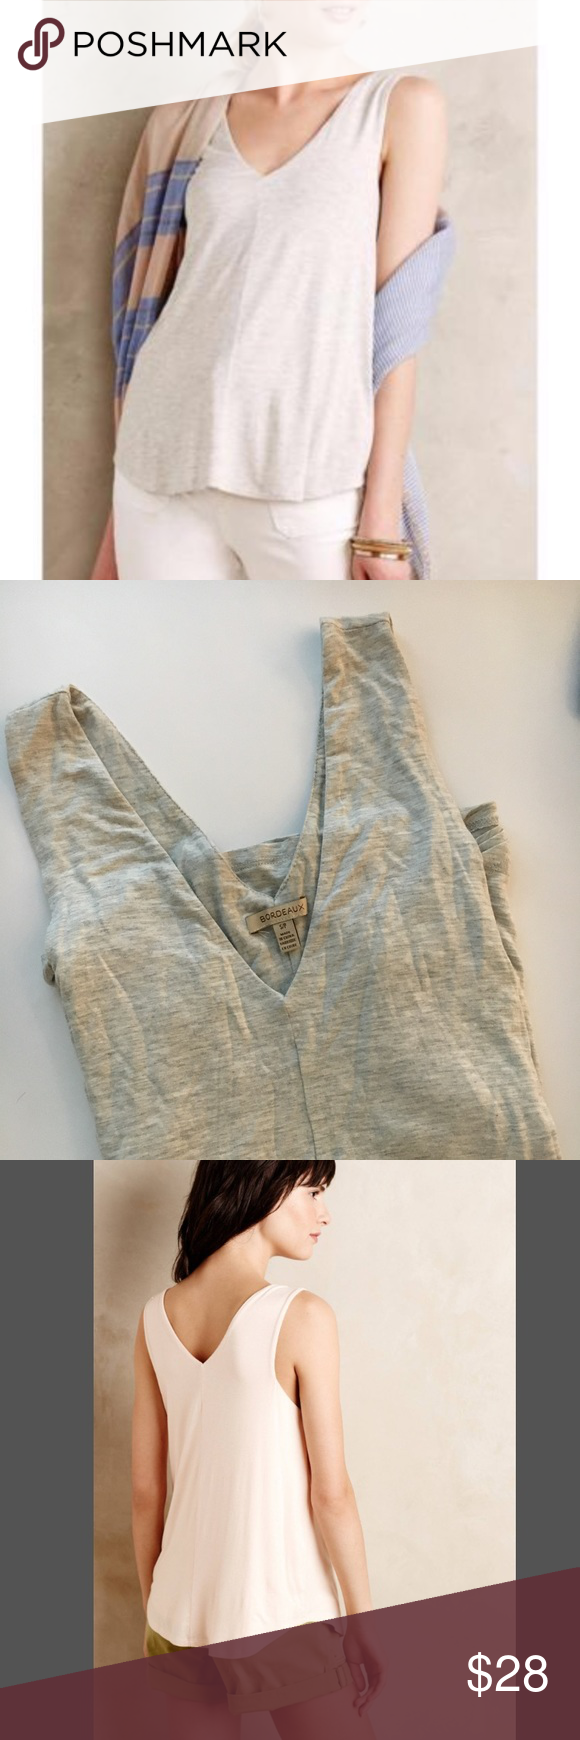 c39855789c Anthropologie Bordeaux Double V Swing Tank Gray Anthropologie tank, V neck  in the front and back, very soft jersey, drapes nicely. Anthropologie Tops  Tank ...